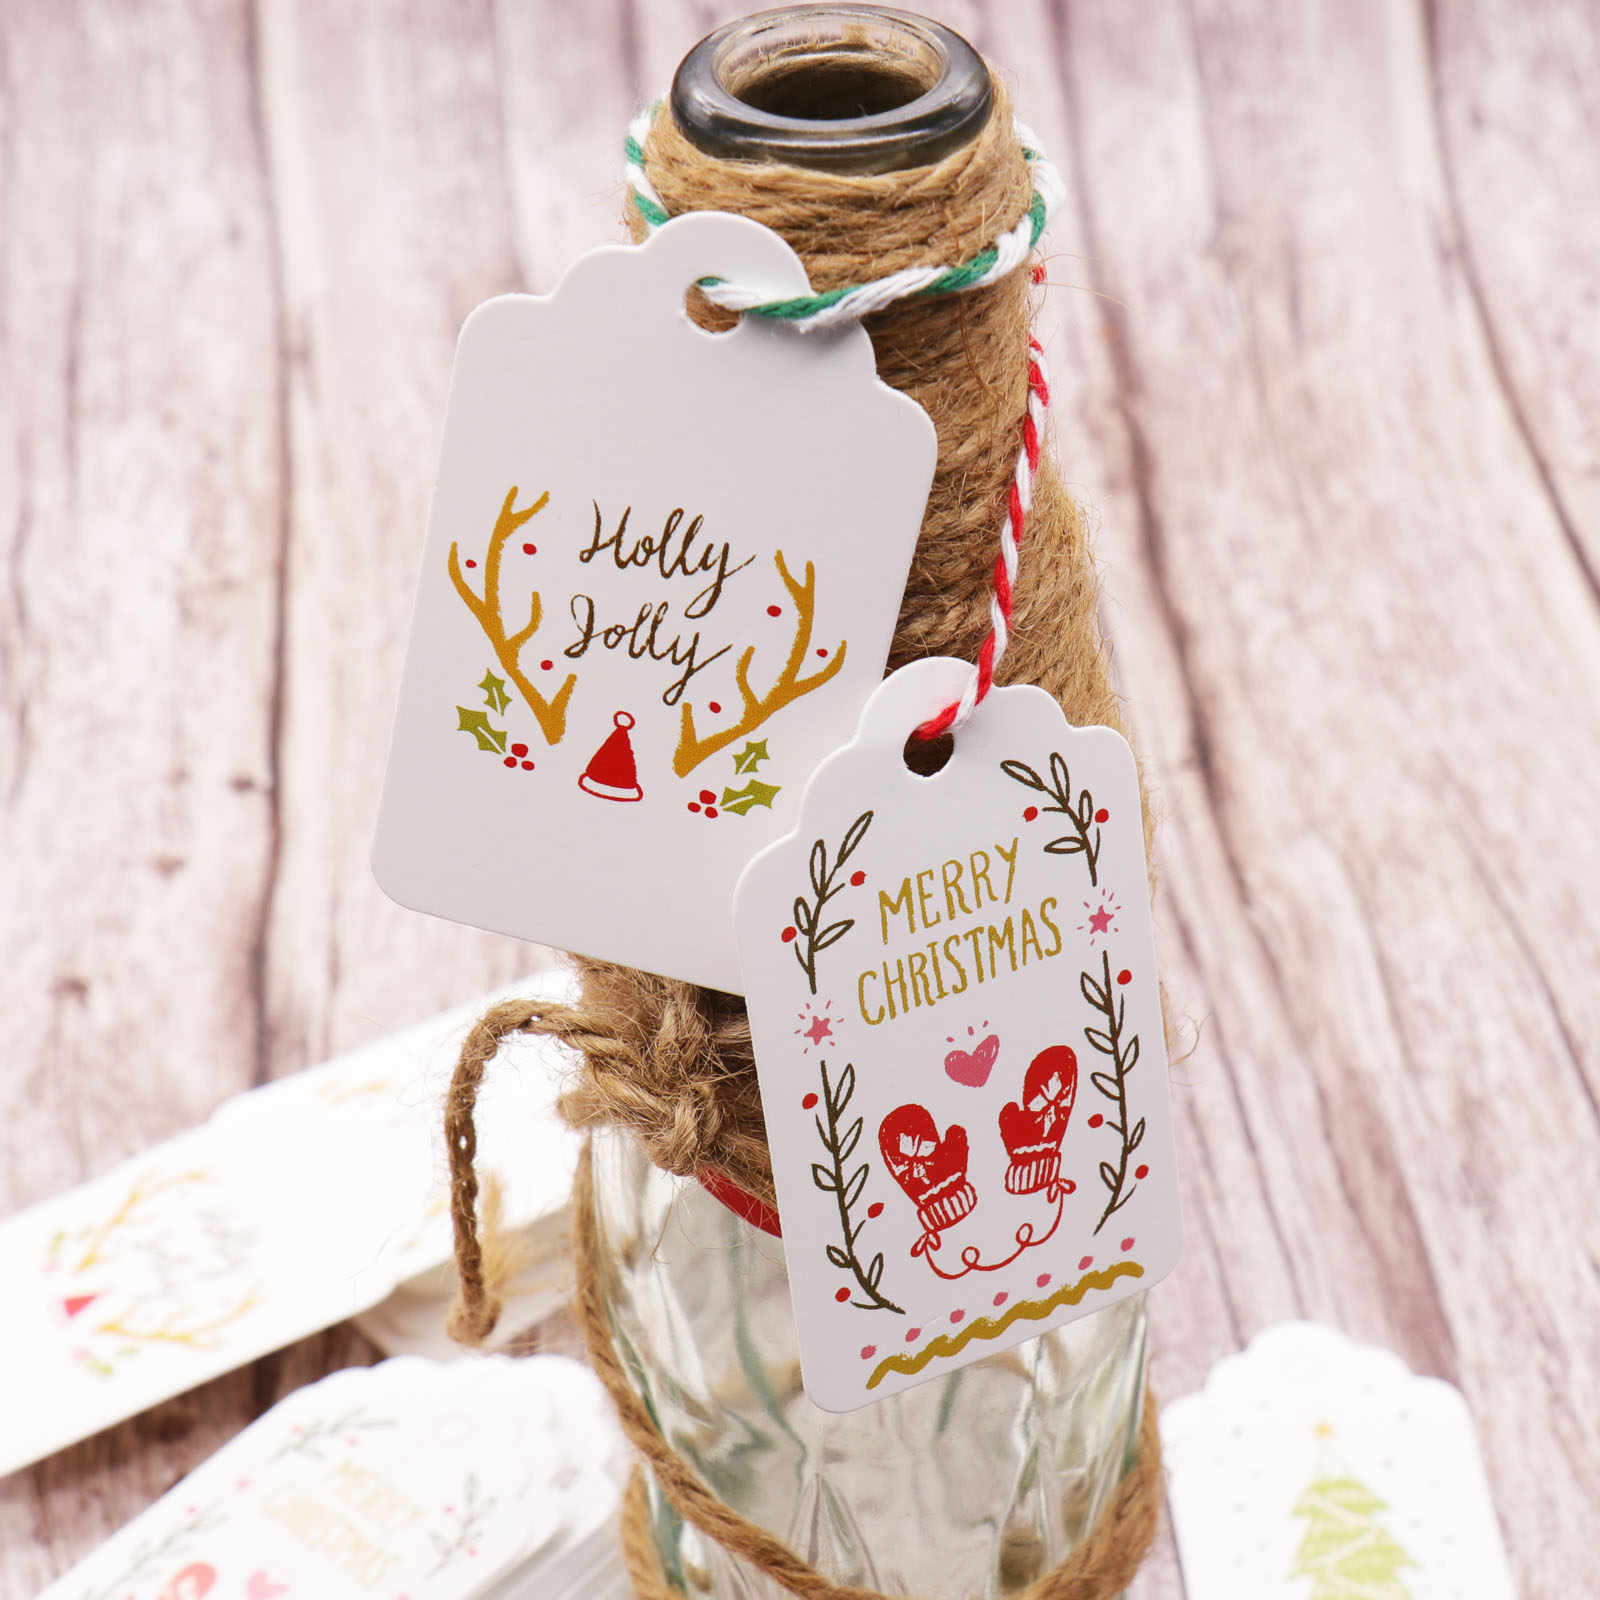 Merry Christmas Gift Tags.50pcs Diy Kraft Paper Christmas Tag Wish Card Merry Christmas Gift Tags Label For Gift Wrapping Xmas New Year Party Decor